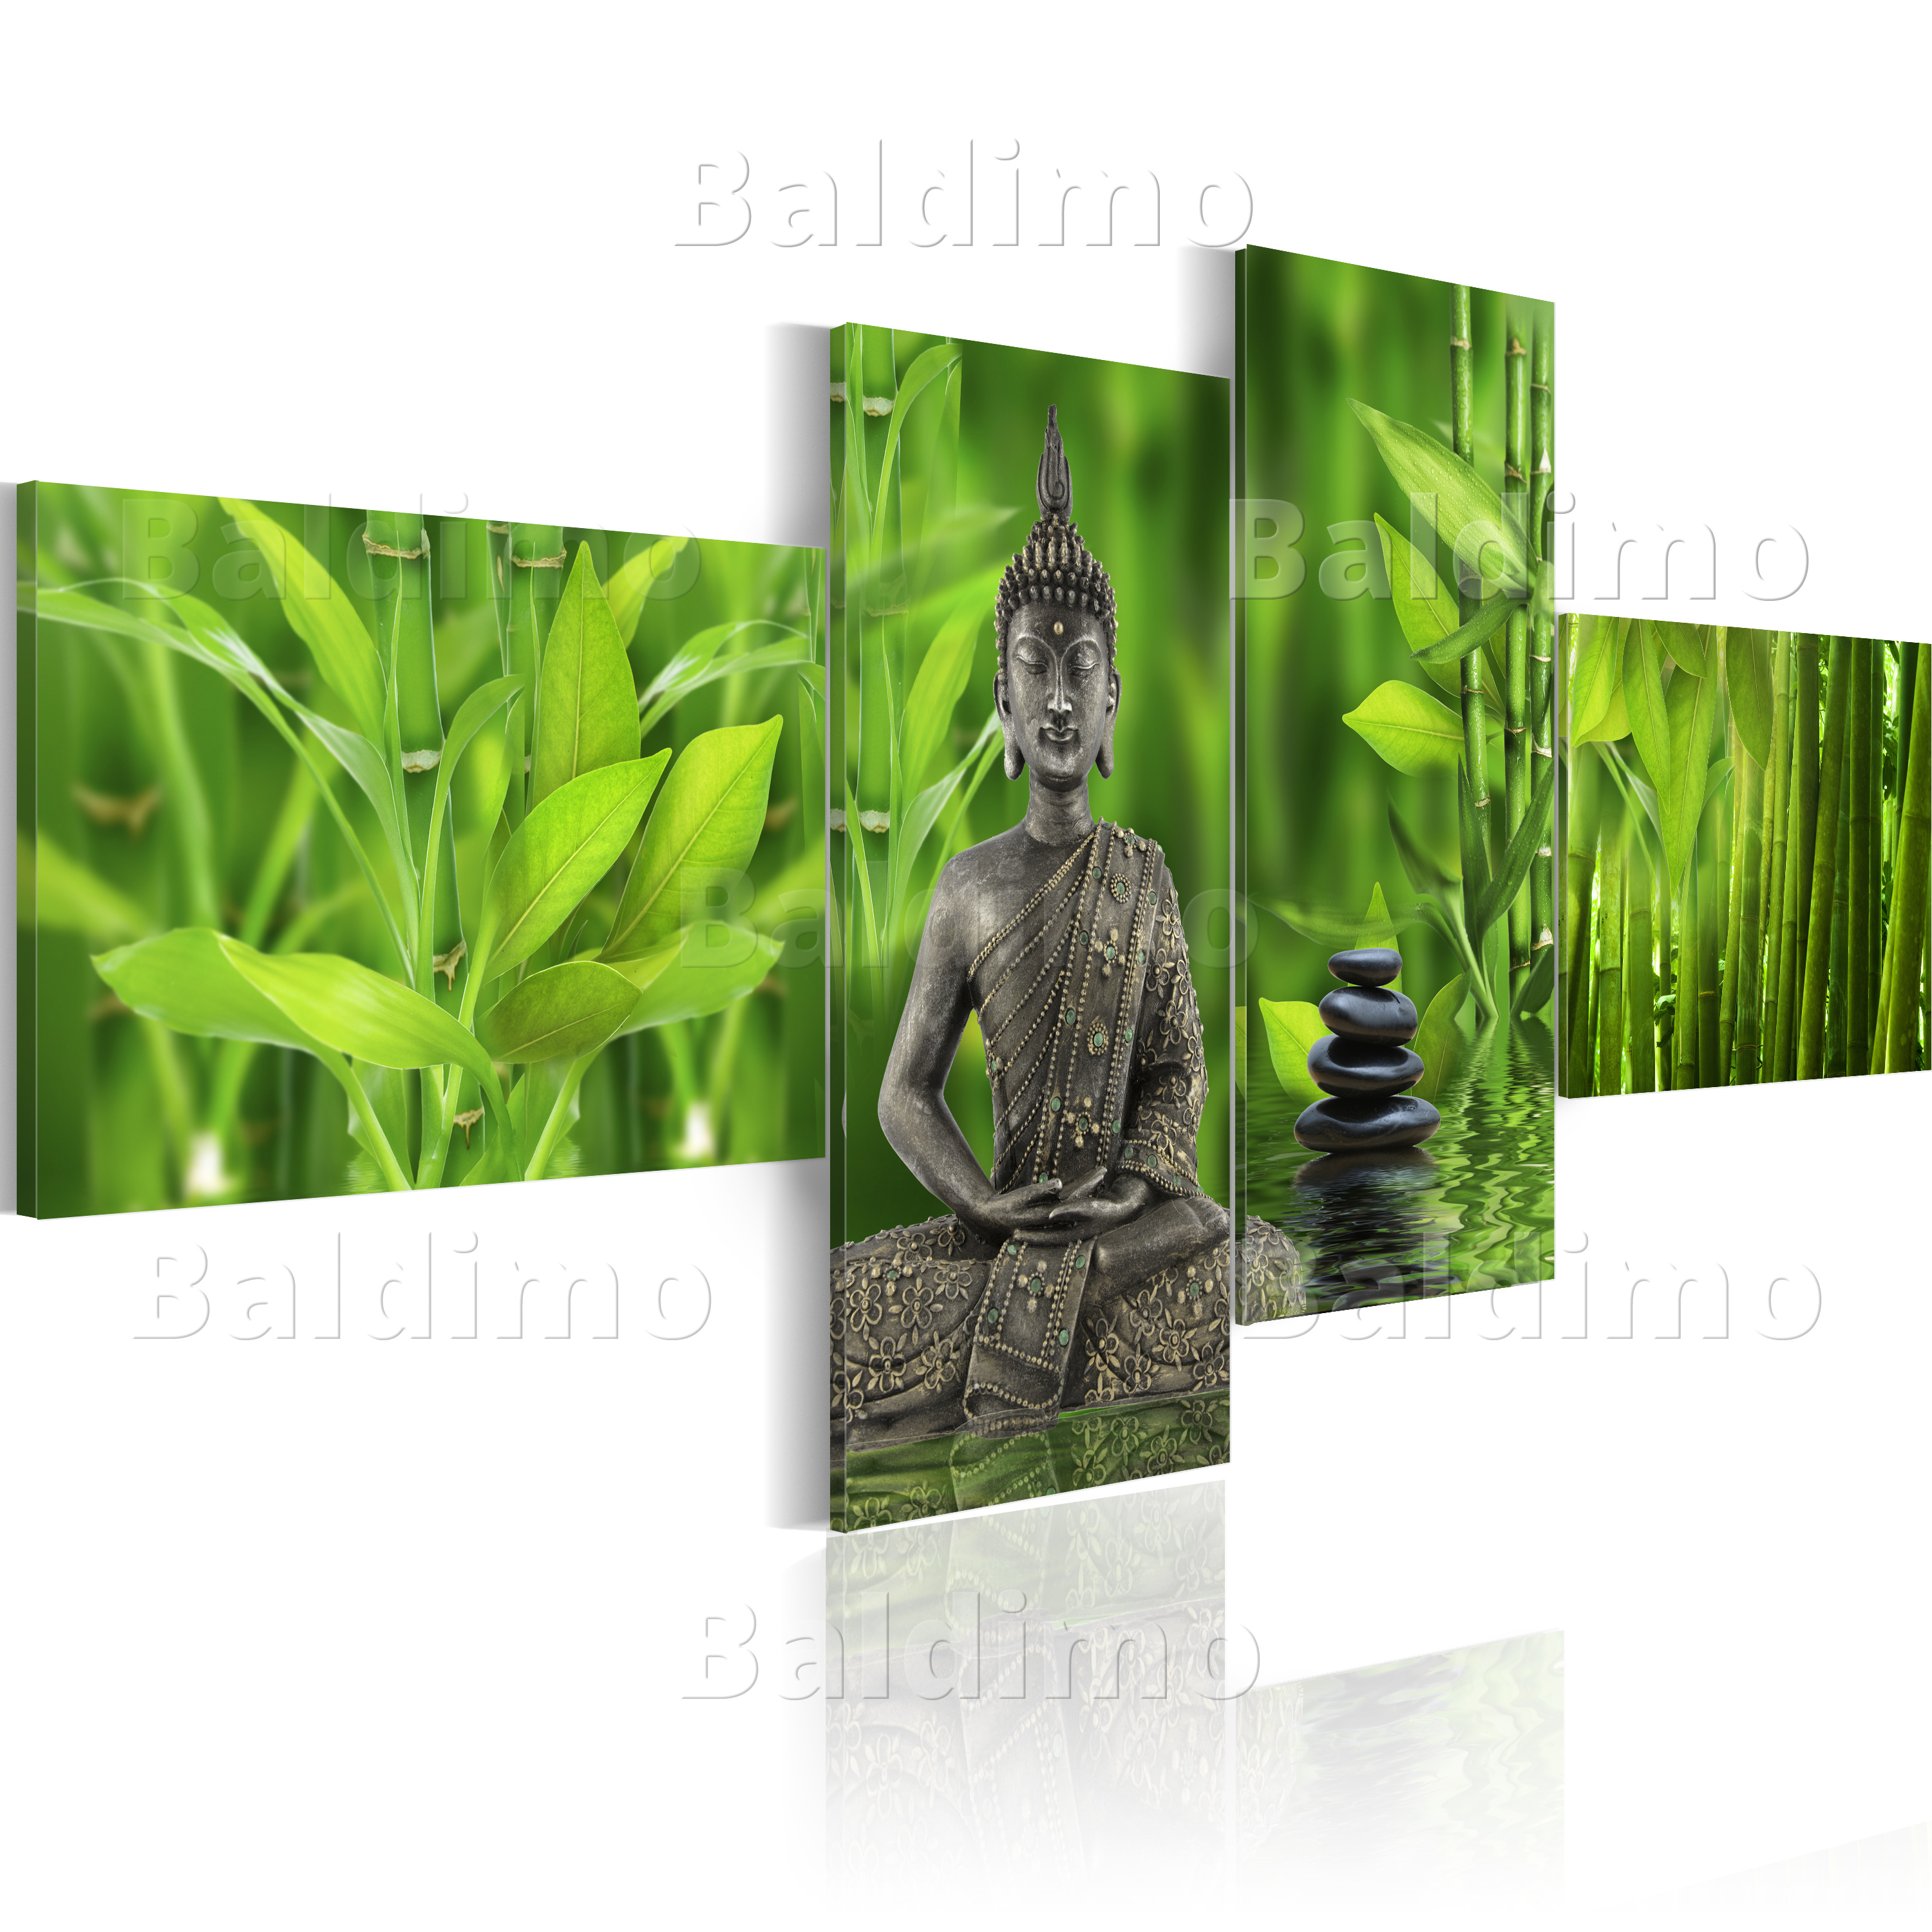 leinwand bilder xxl fertig aufgespannt bild buddha 030113 1. Black Bedroom Furniture Sets. Home Design Ideas